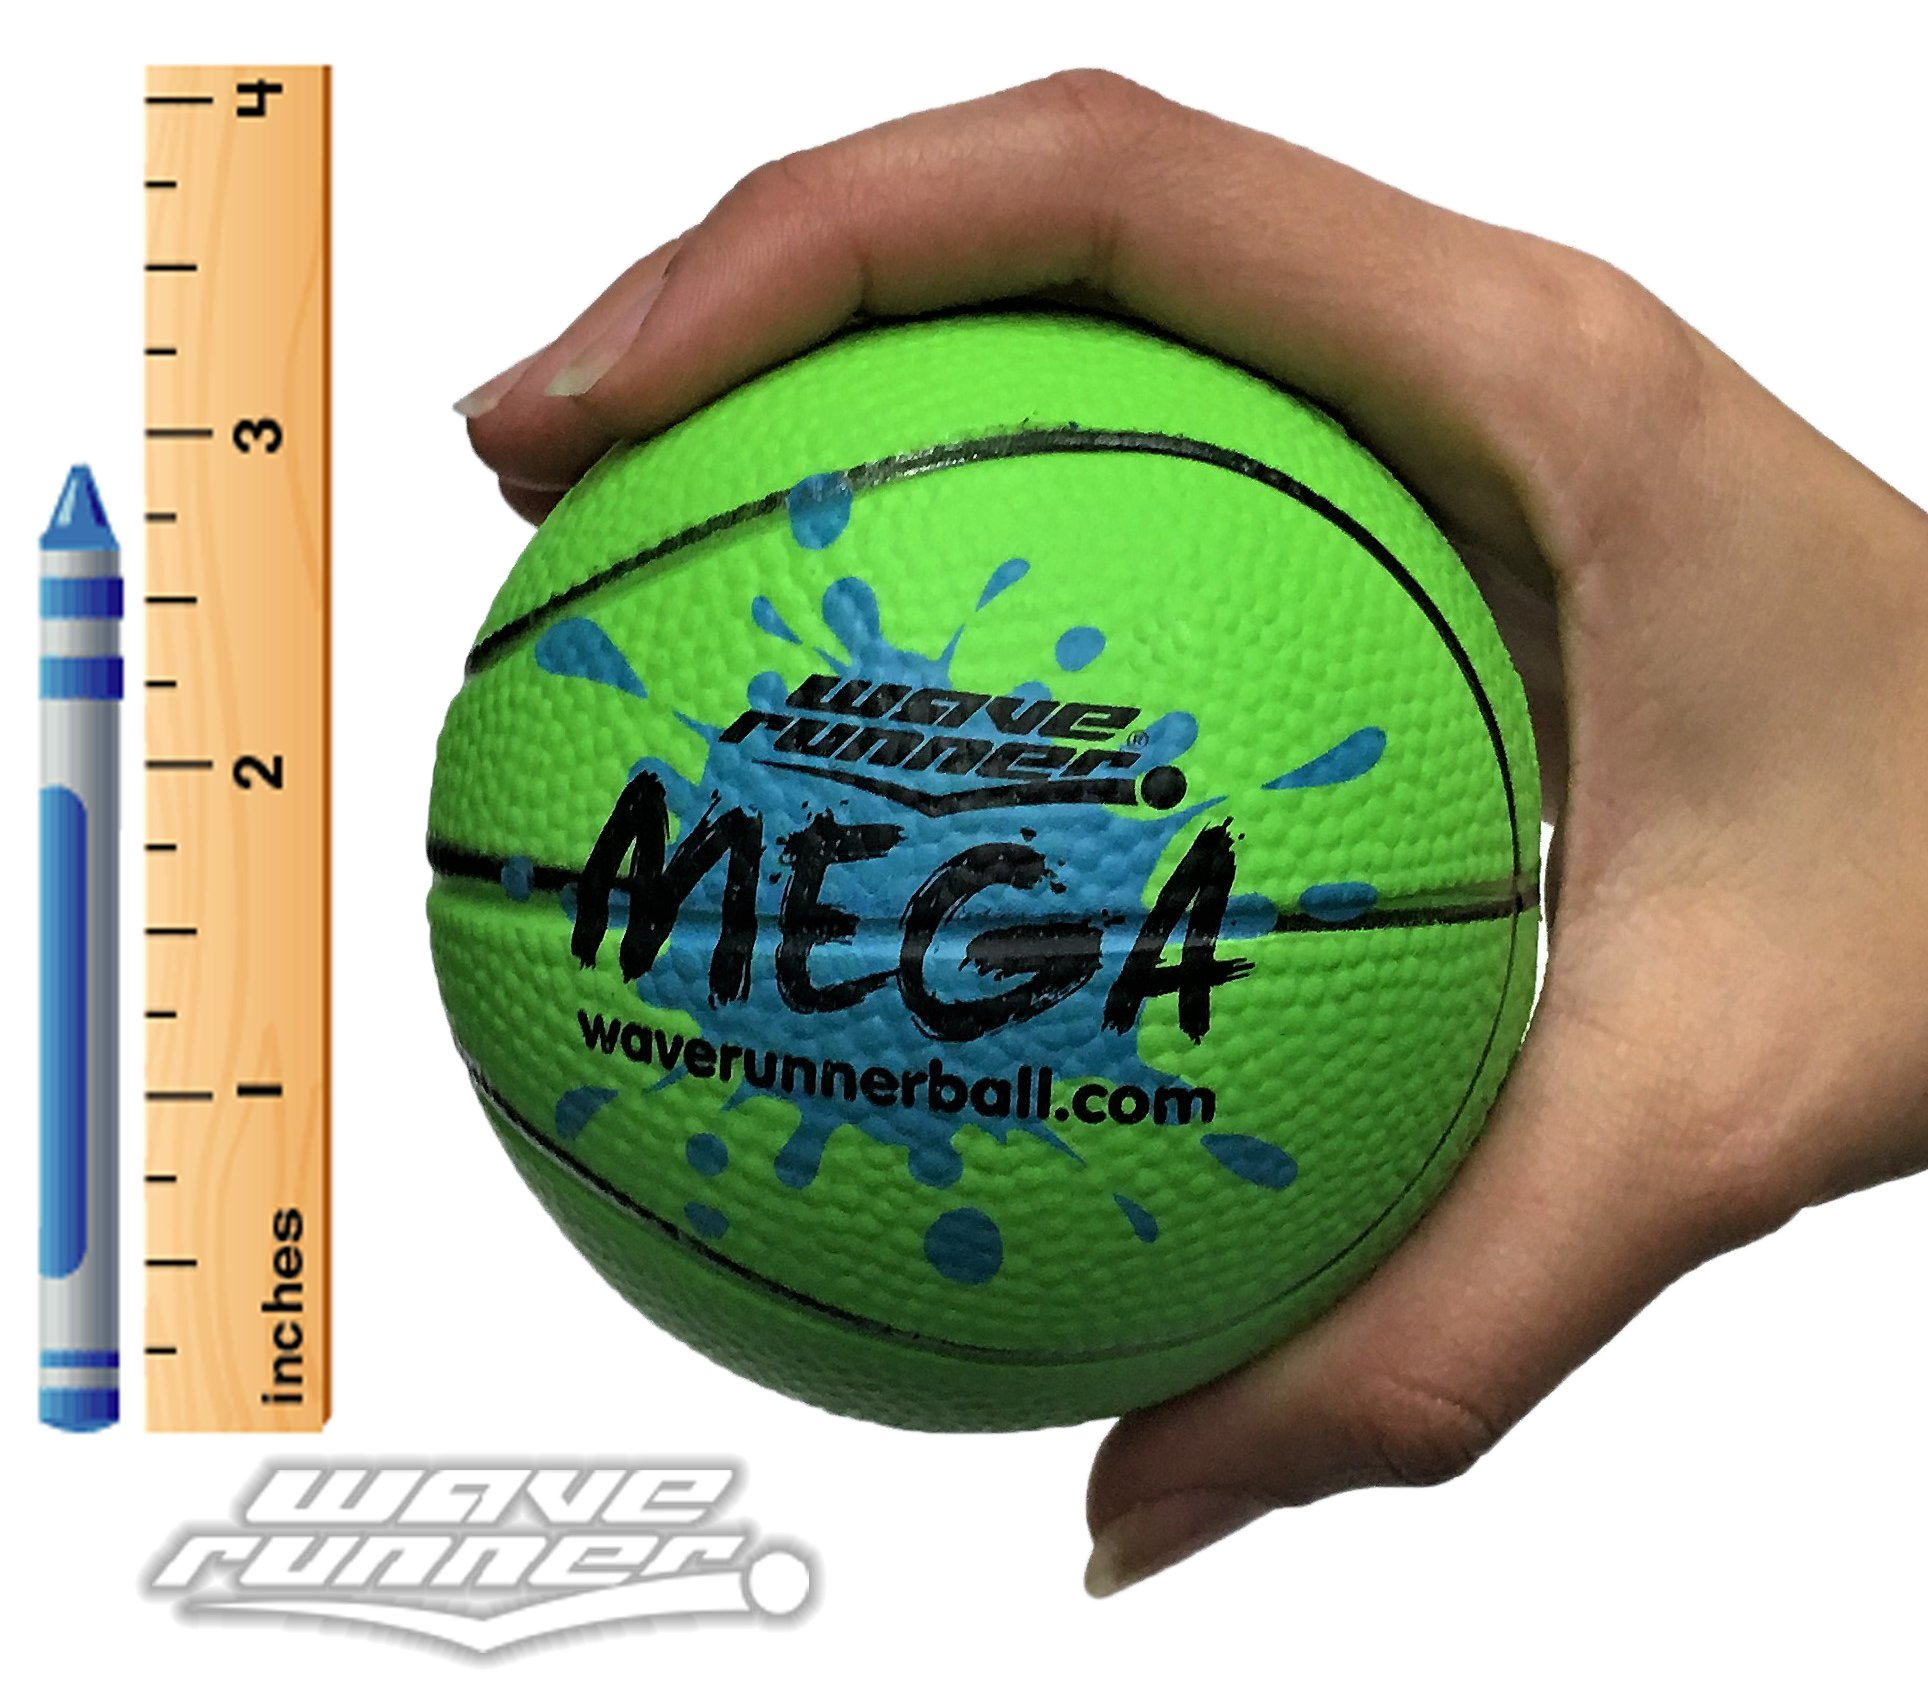 Wave Runner Mega Sports Miniature Basketball 3.5'' Waterproof Bouncing Ball for All Ages (Green)